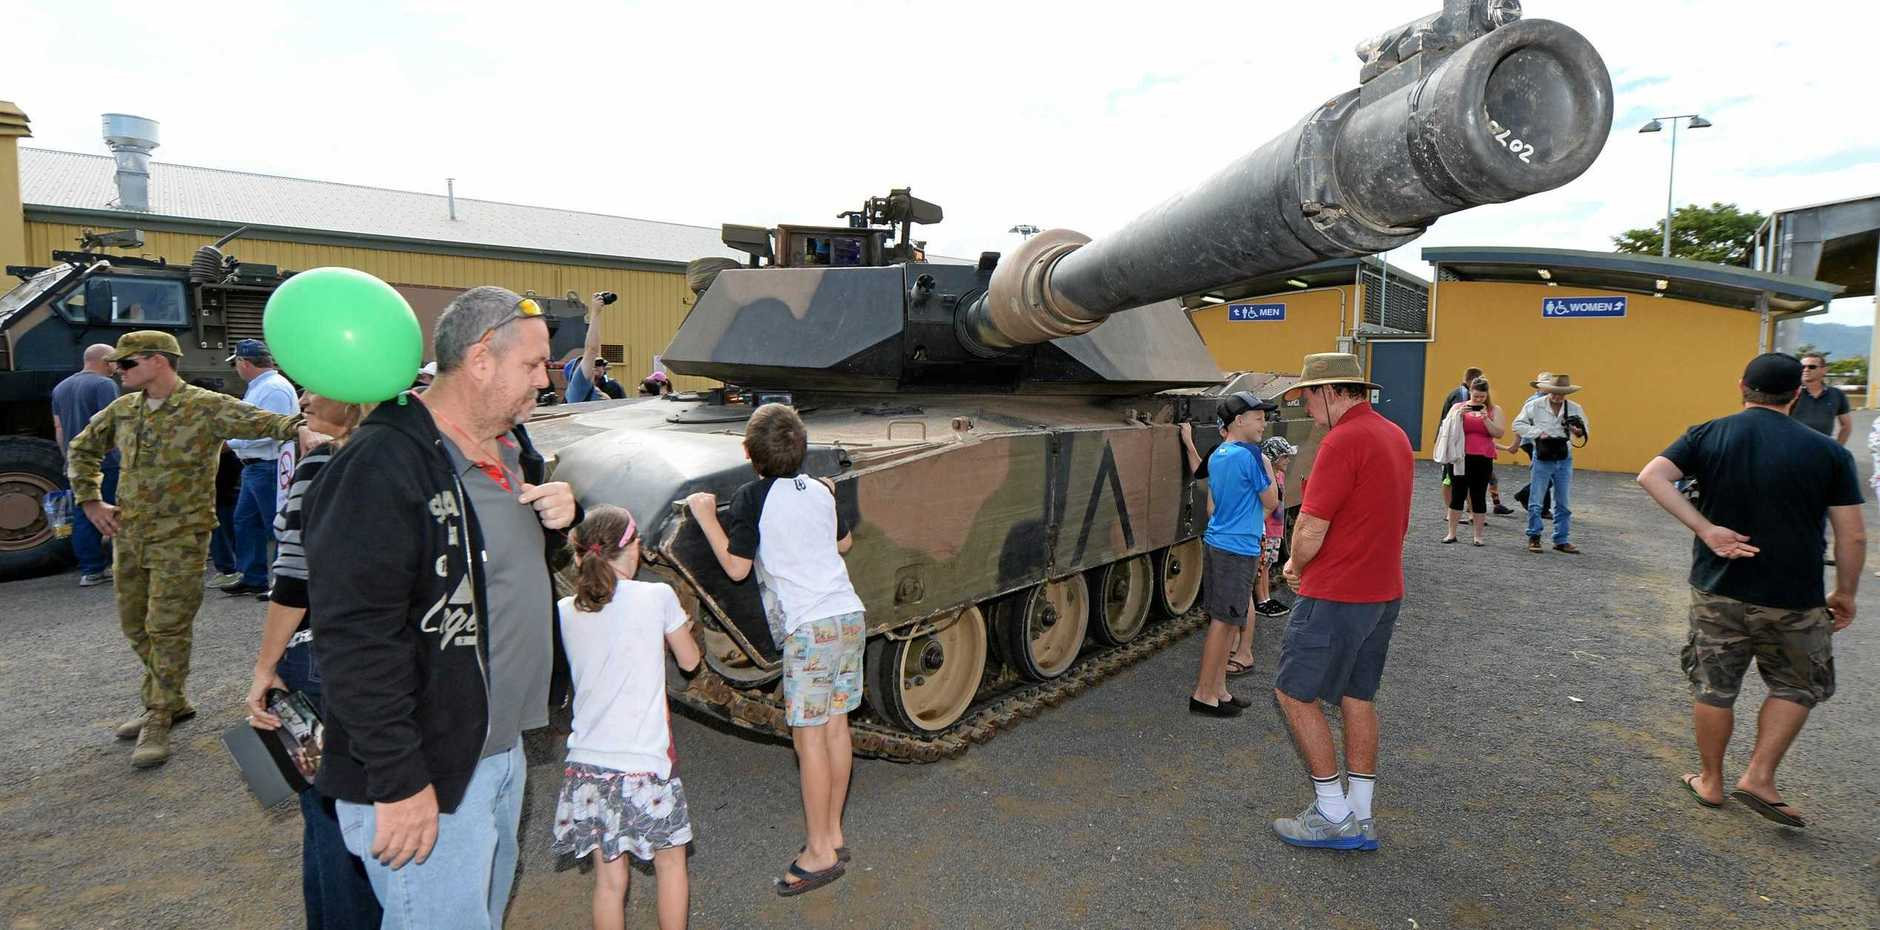 An Australian Army Abrams Tank on display at a previous Talisman Sabre Open Day.